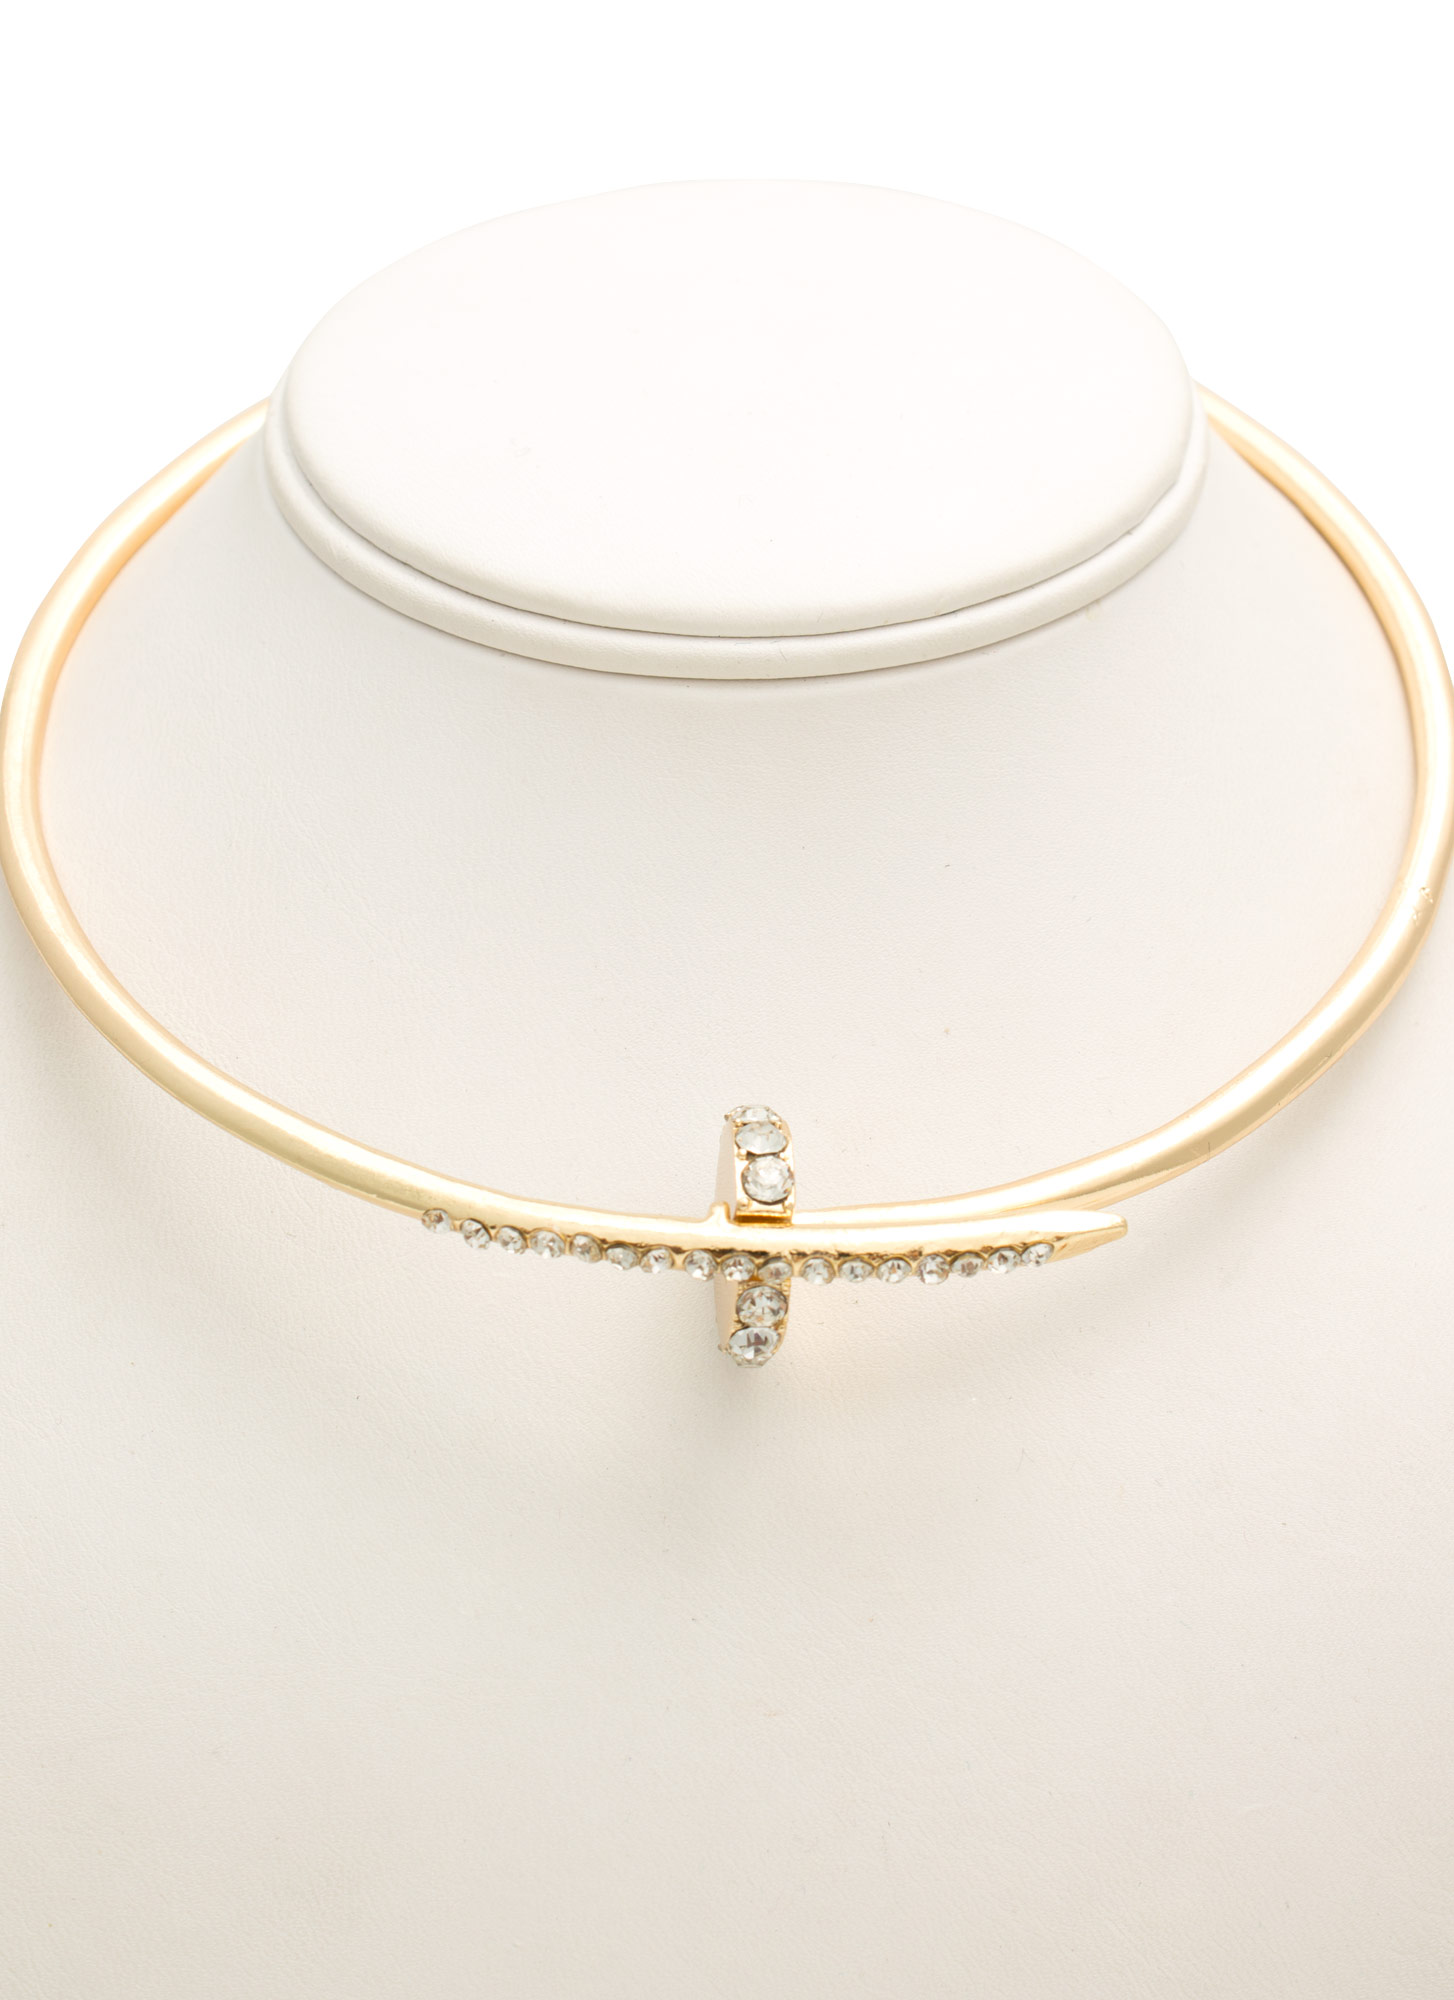 Embellished Nail Choker Set GOLD